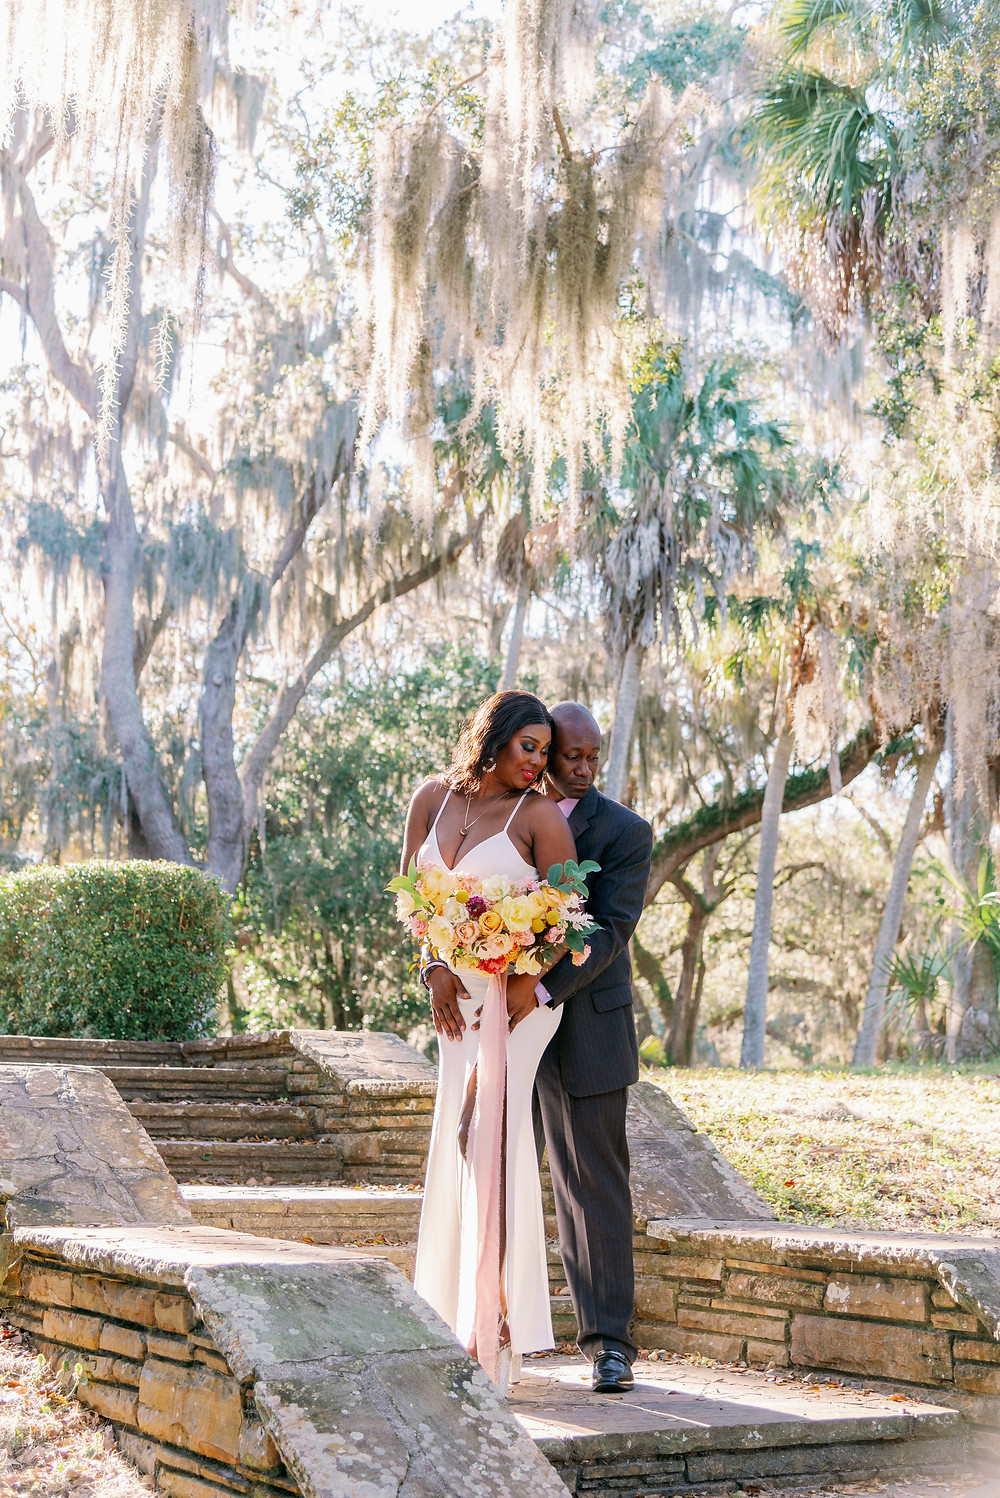 Elopement photos at Philippe Park in Safety Harbor